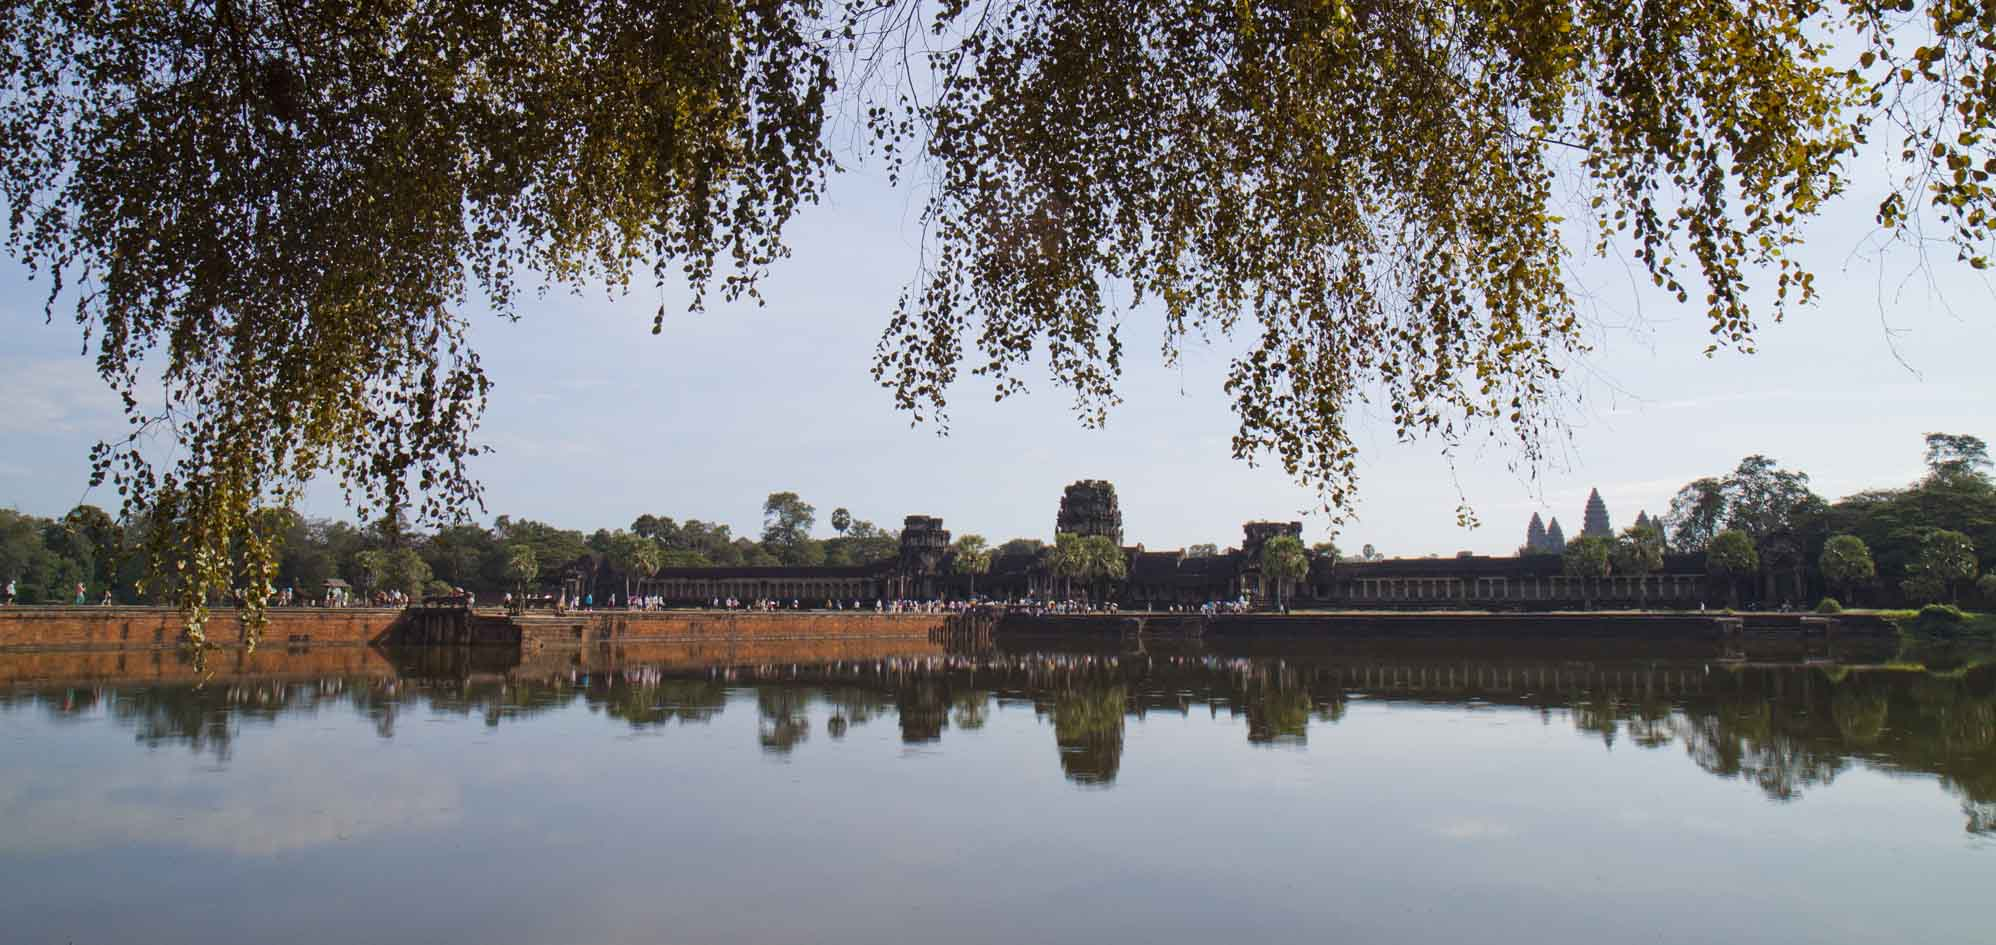 Approaching Angkor Wat from the west